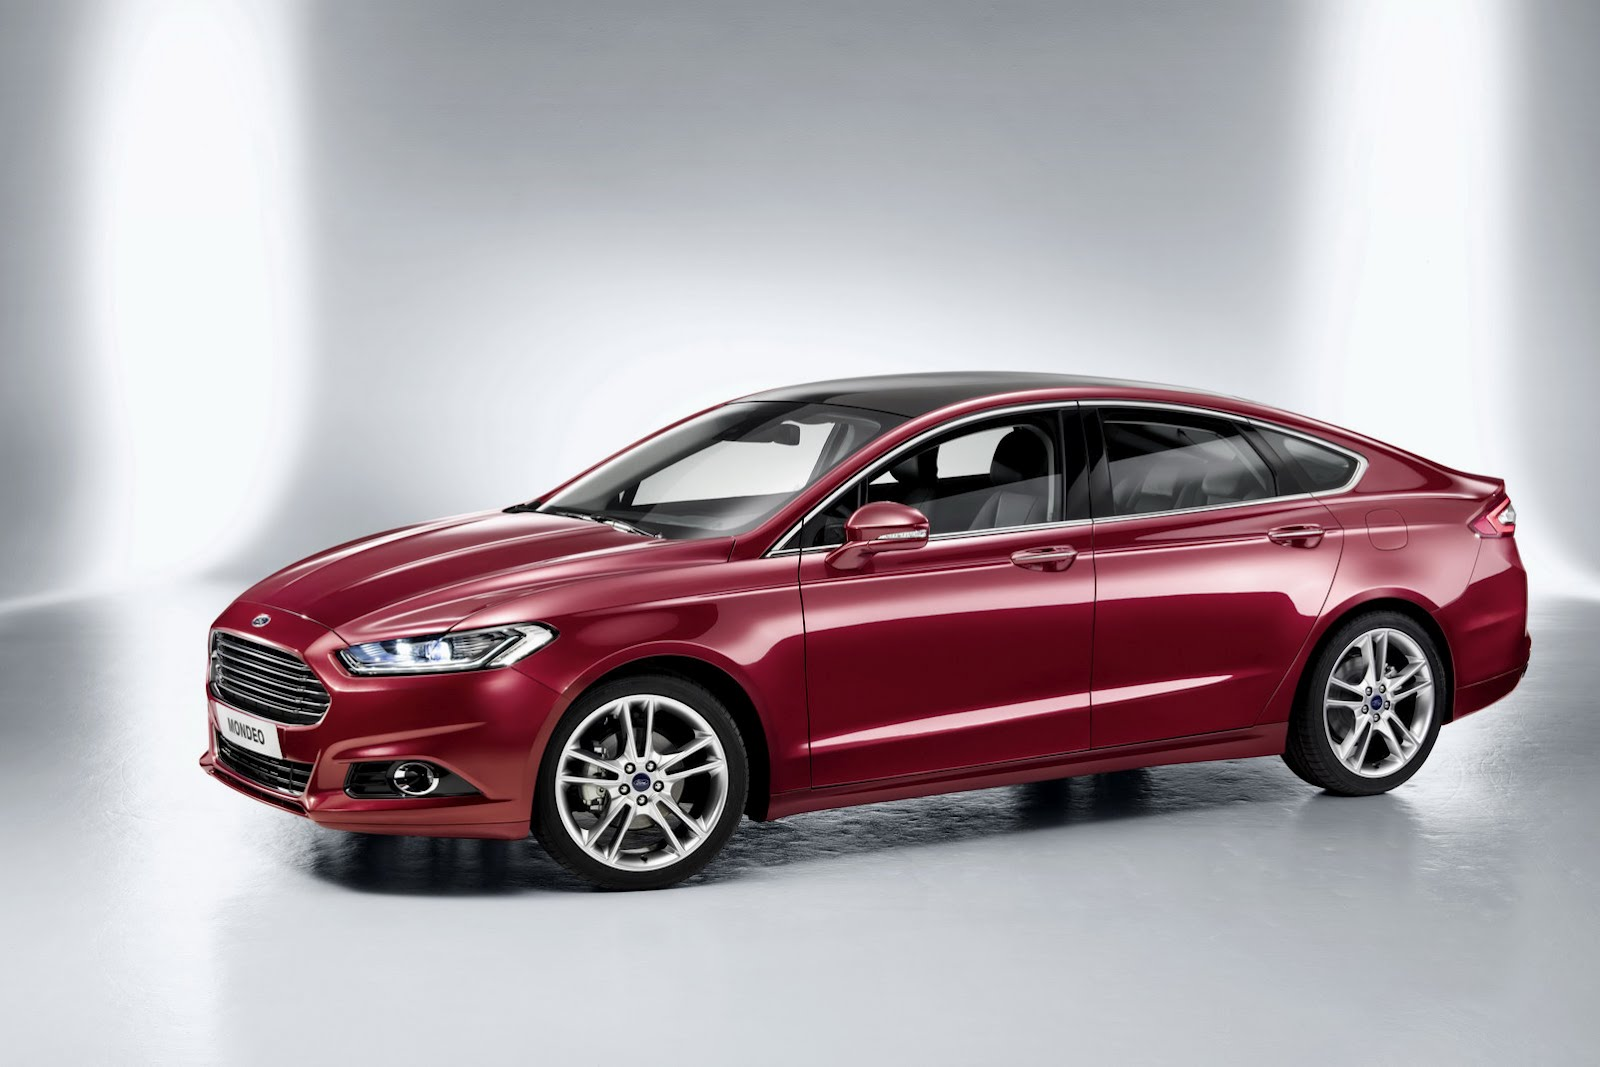 Ford S-max 2013 photo - 3